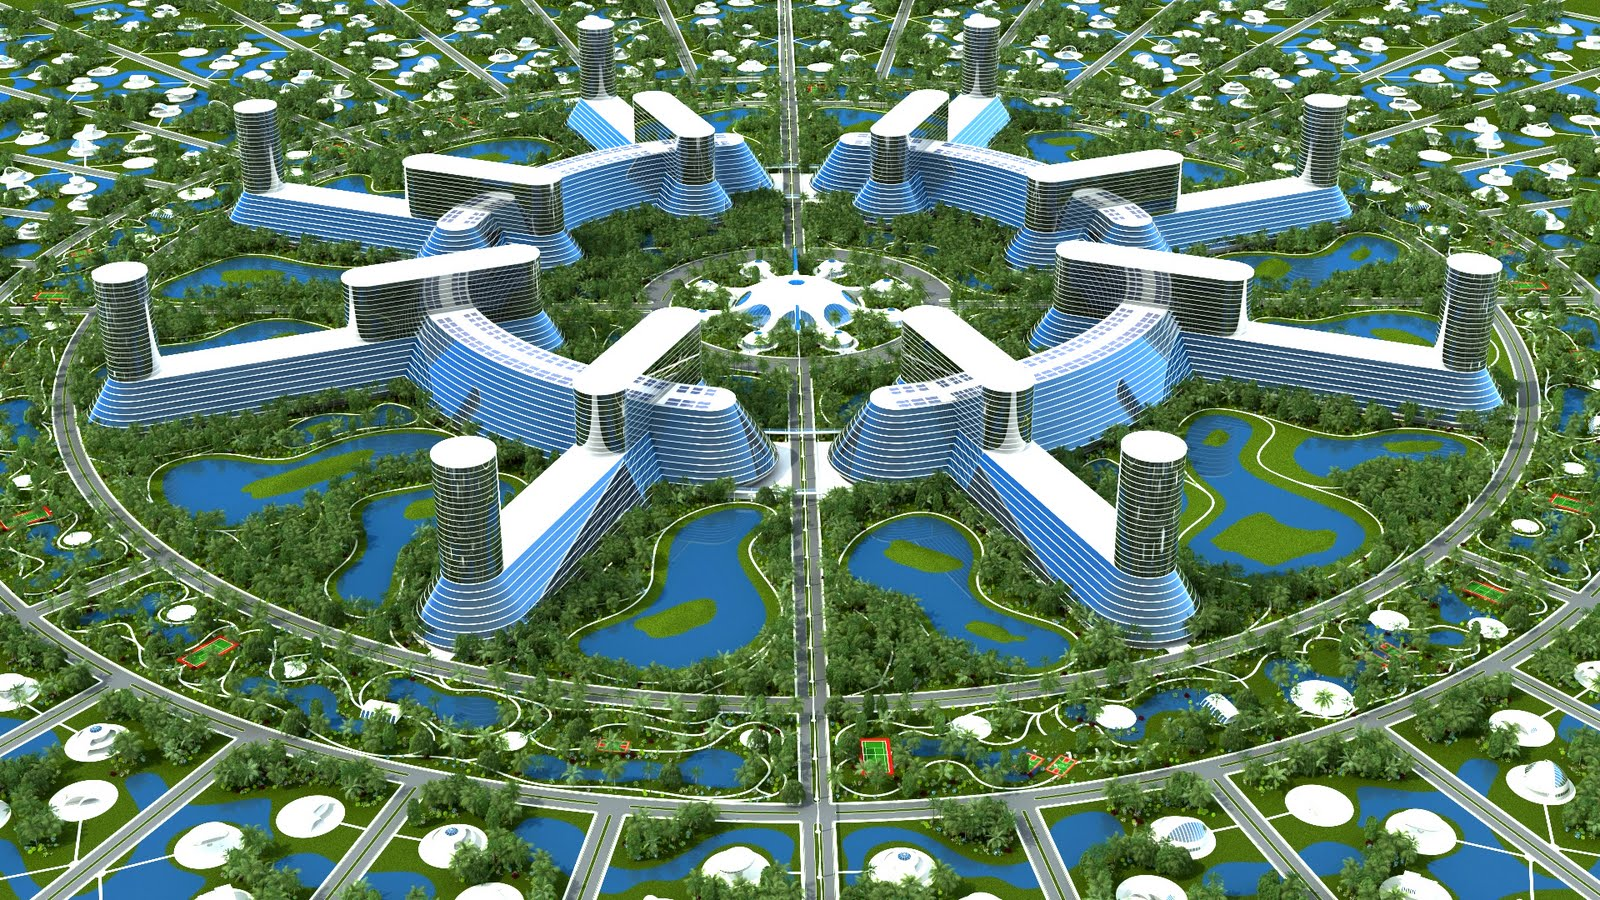 jacque fresco venus project The film zeitgeist addendum featuring mr fresco and the venus project  produced by musician and film maker peter joseph was released in 2008 a  sequel to.